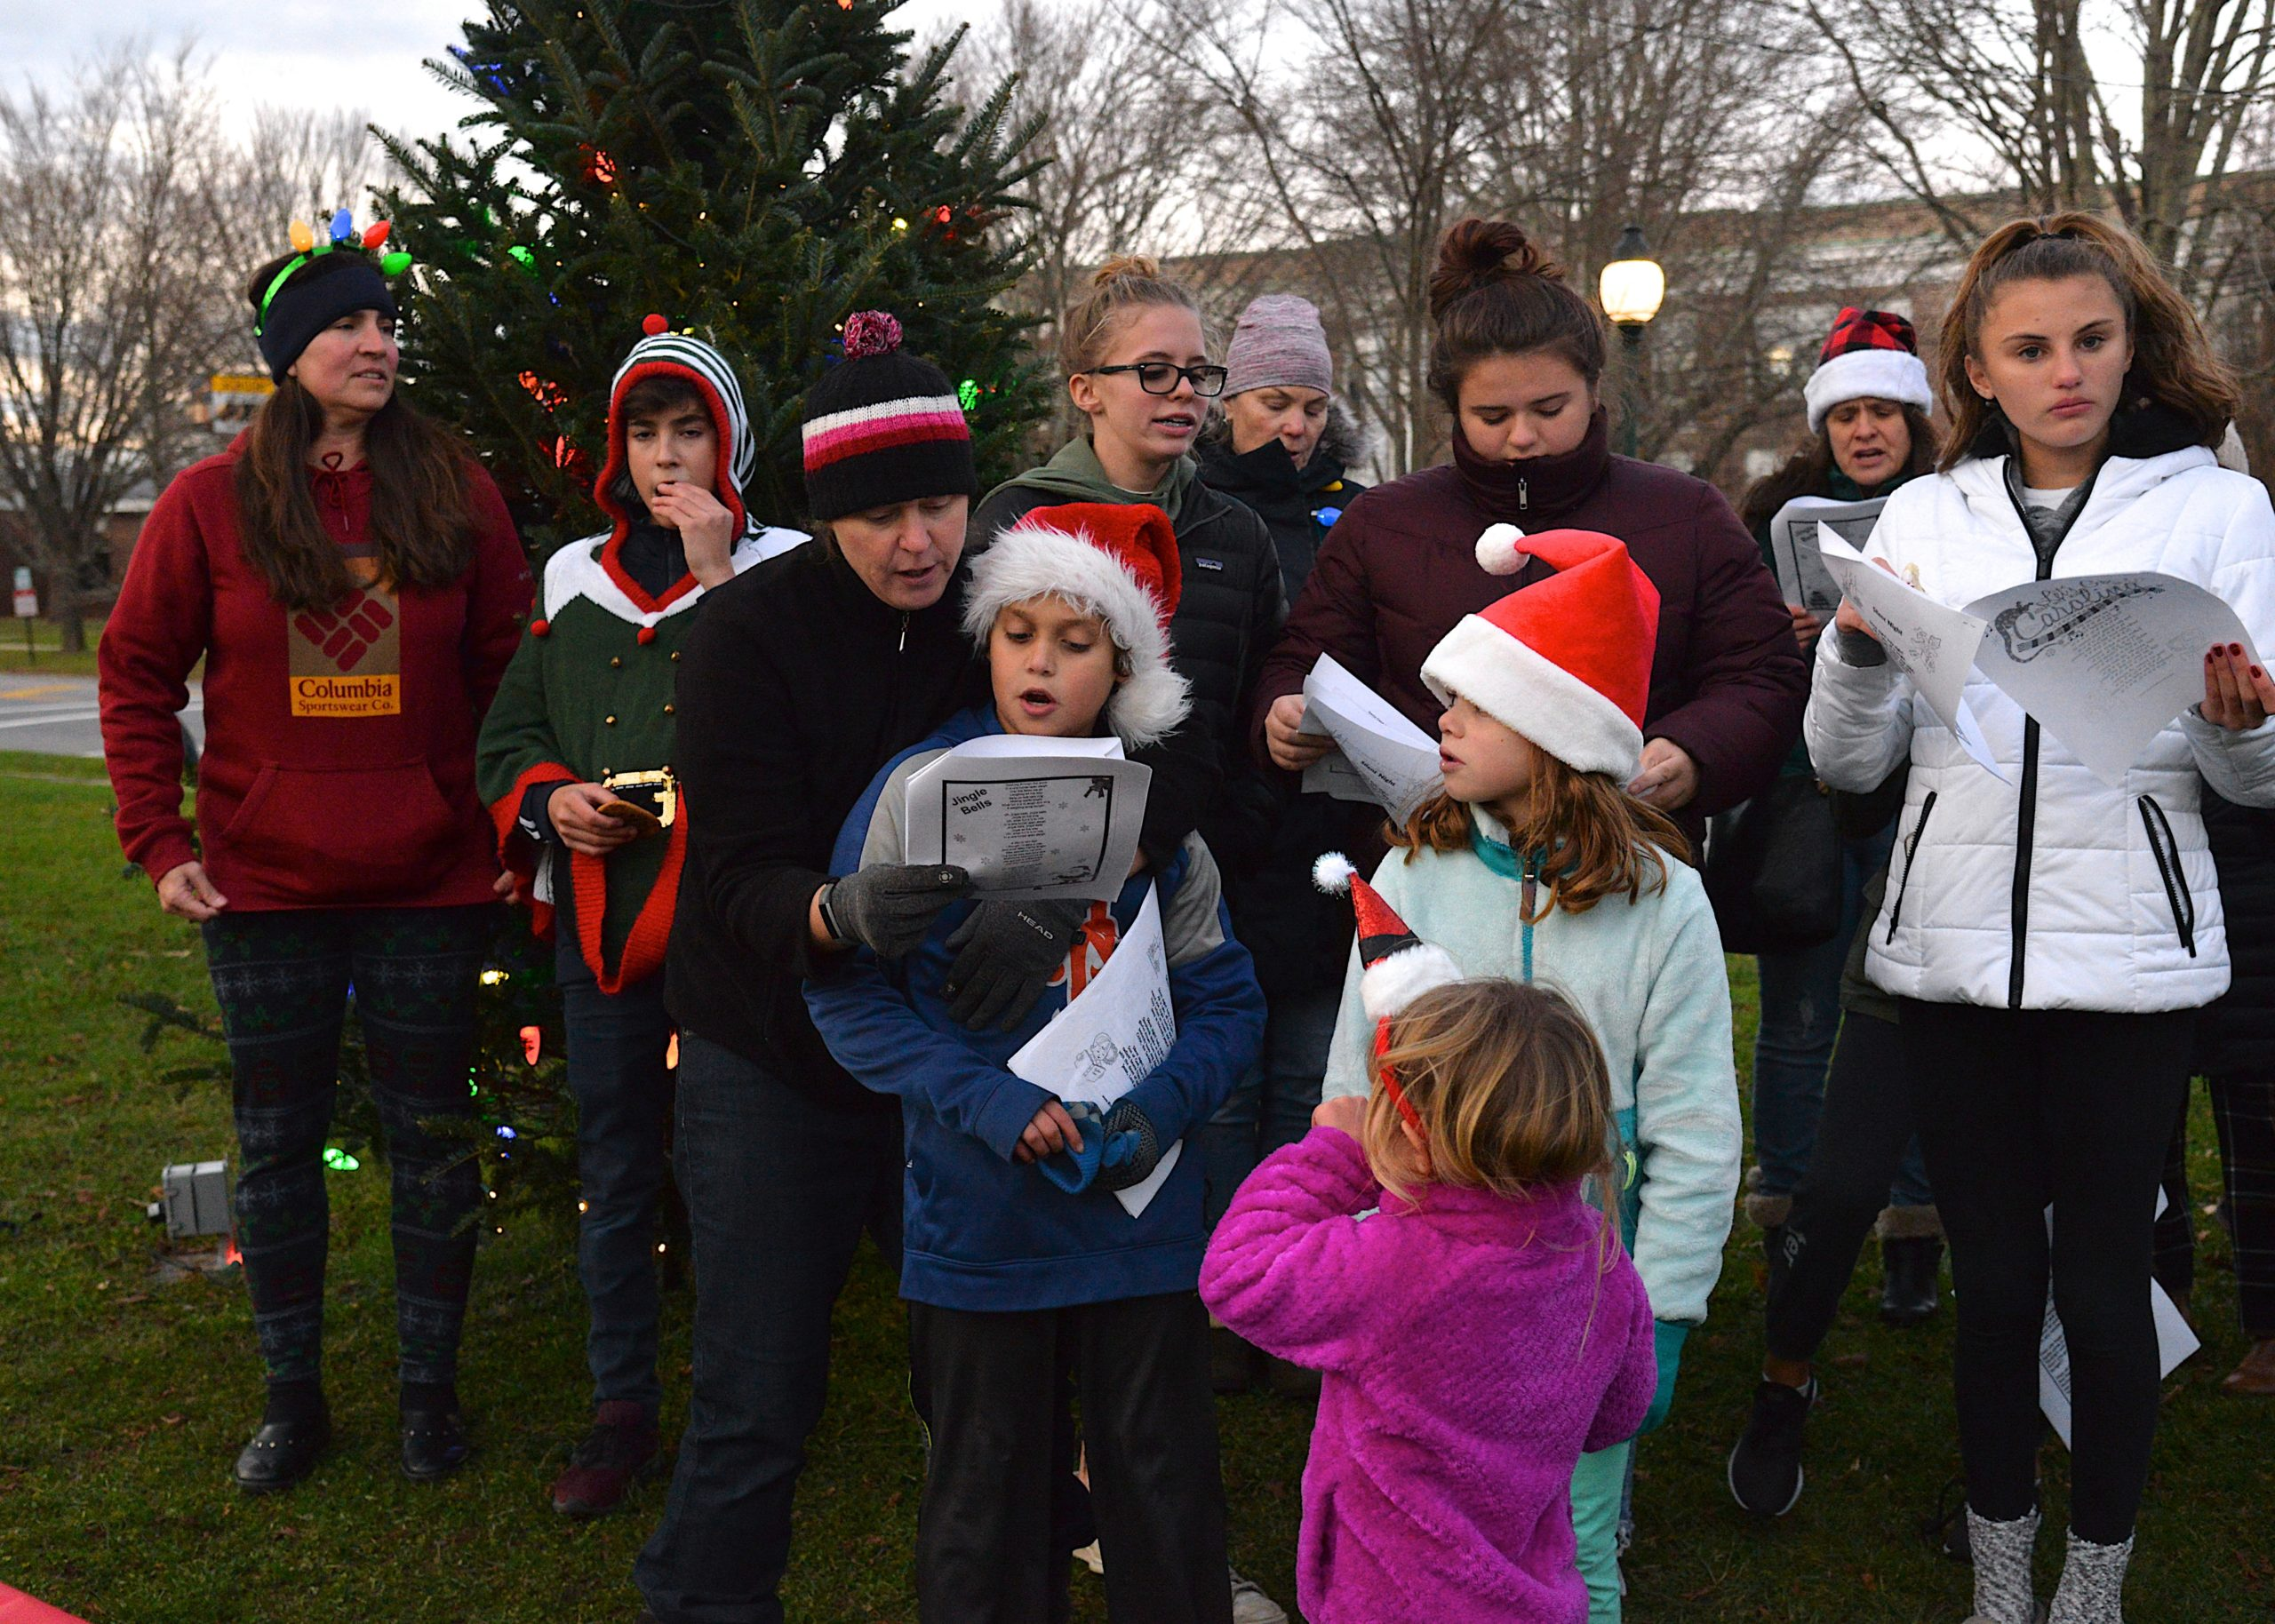 Members of the East Hampton Presbyterian Churc set out for a stroll on Sunday to sing Christmas carols in the village business district. KYRIL BROMLEY